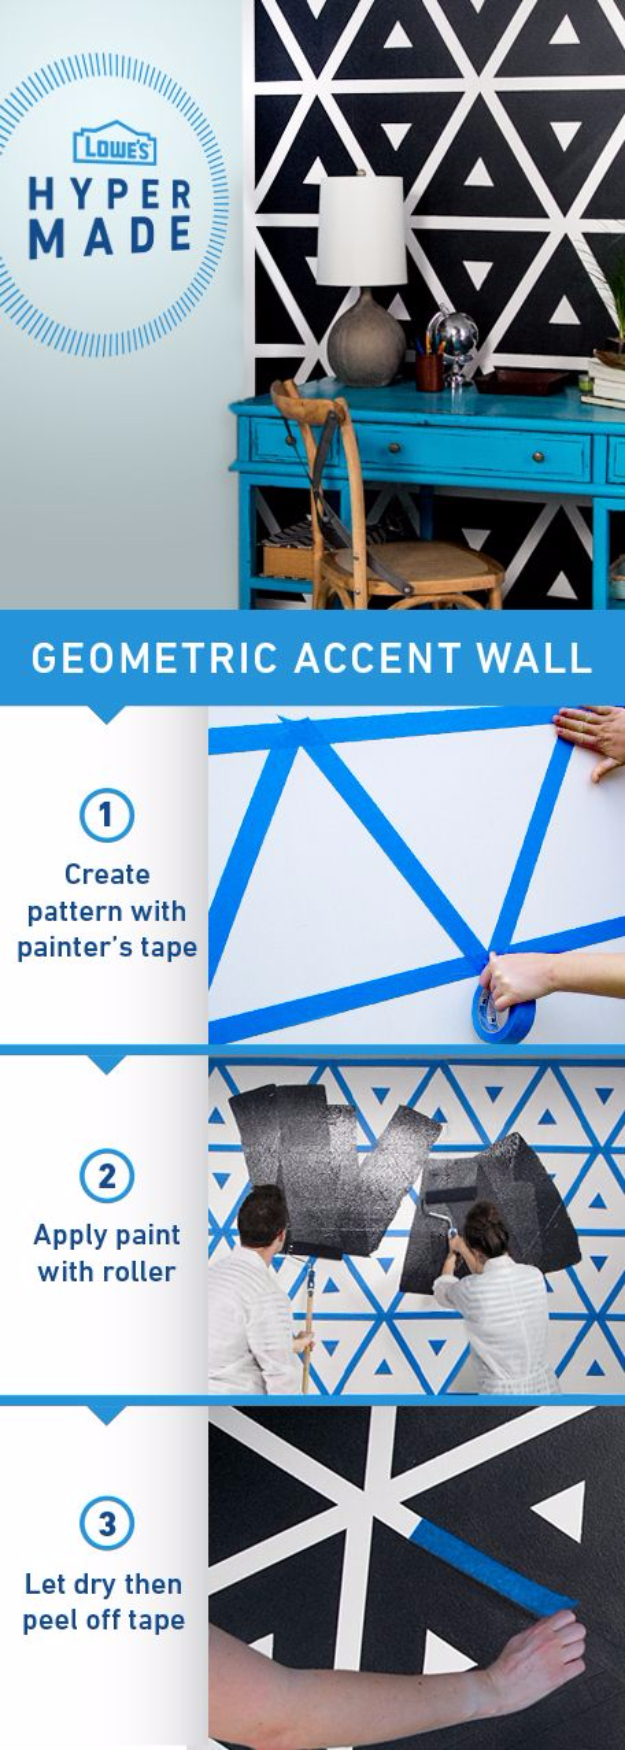 DIY Ideas for Painting Walls - How to Paint A Geometric Accent Wall - Cool Ways To Paint Walls - Techniques, Tips, Stencils, Tutorials, Fun Colors and Creative Designs for Living Room, Bedroom, Kids Room, Bathroom and Kitchen #homeimprovement #diydecor #roomideas #teenrooms #walldecor #paintingideas